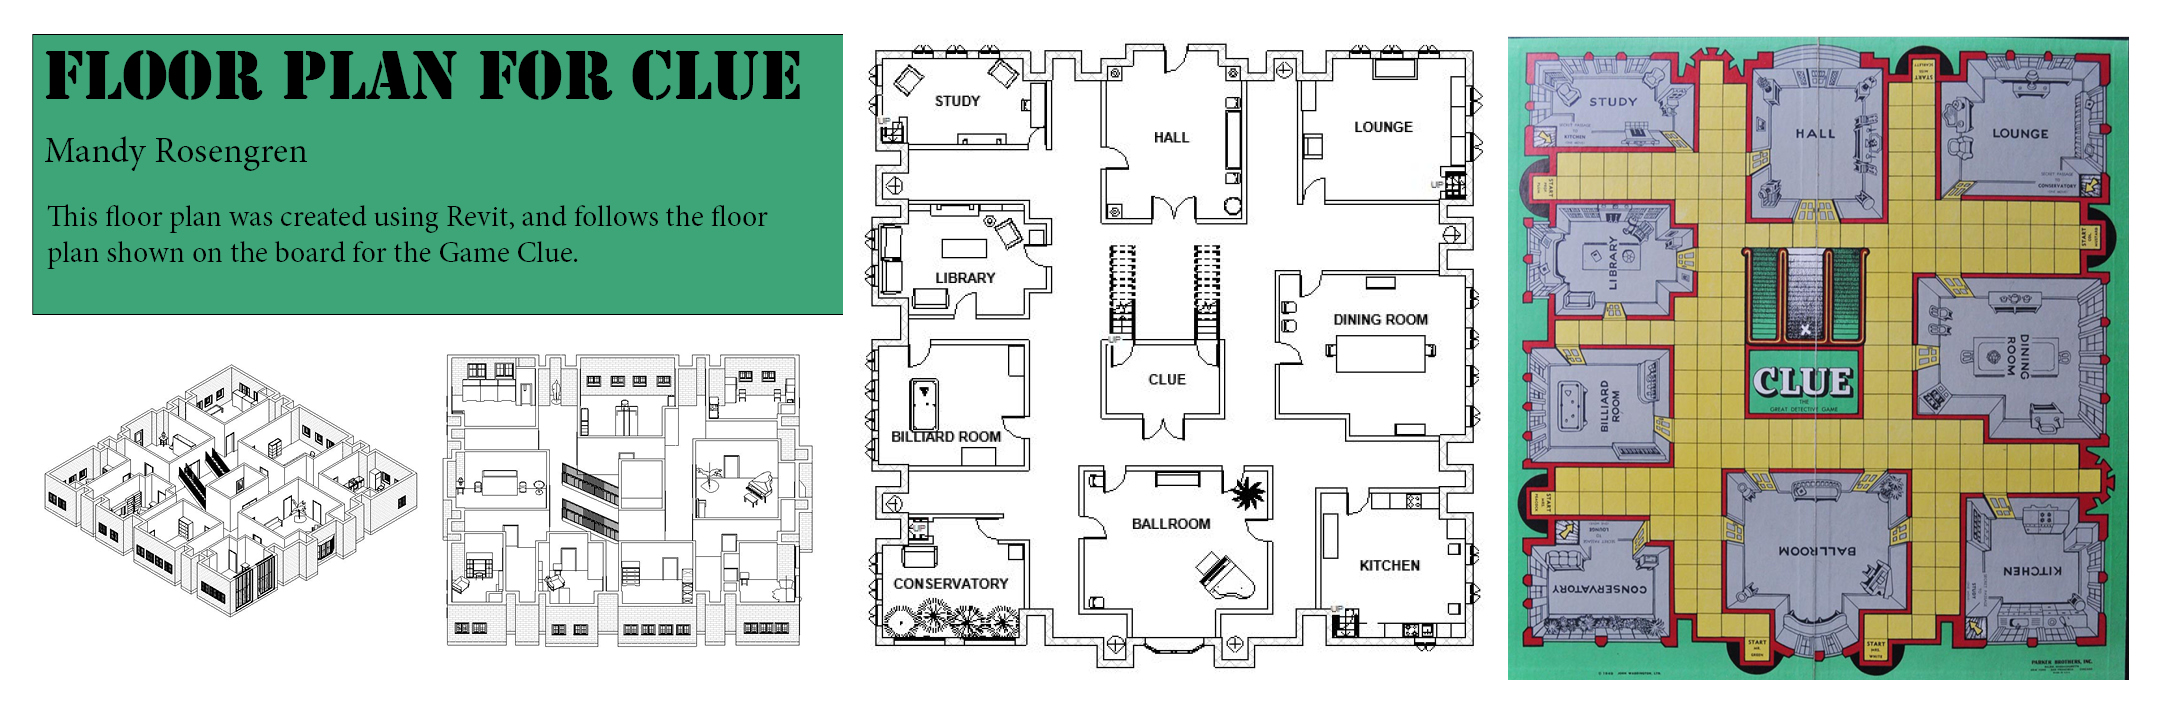 Floor Plan for Clue